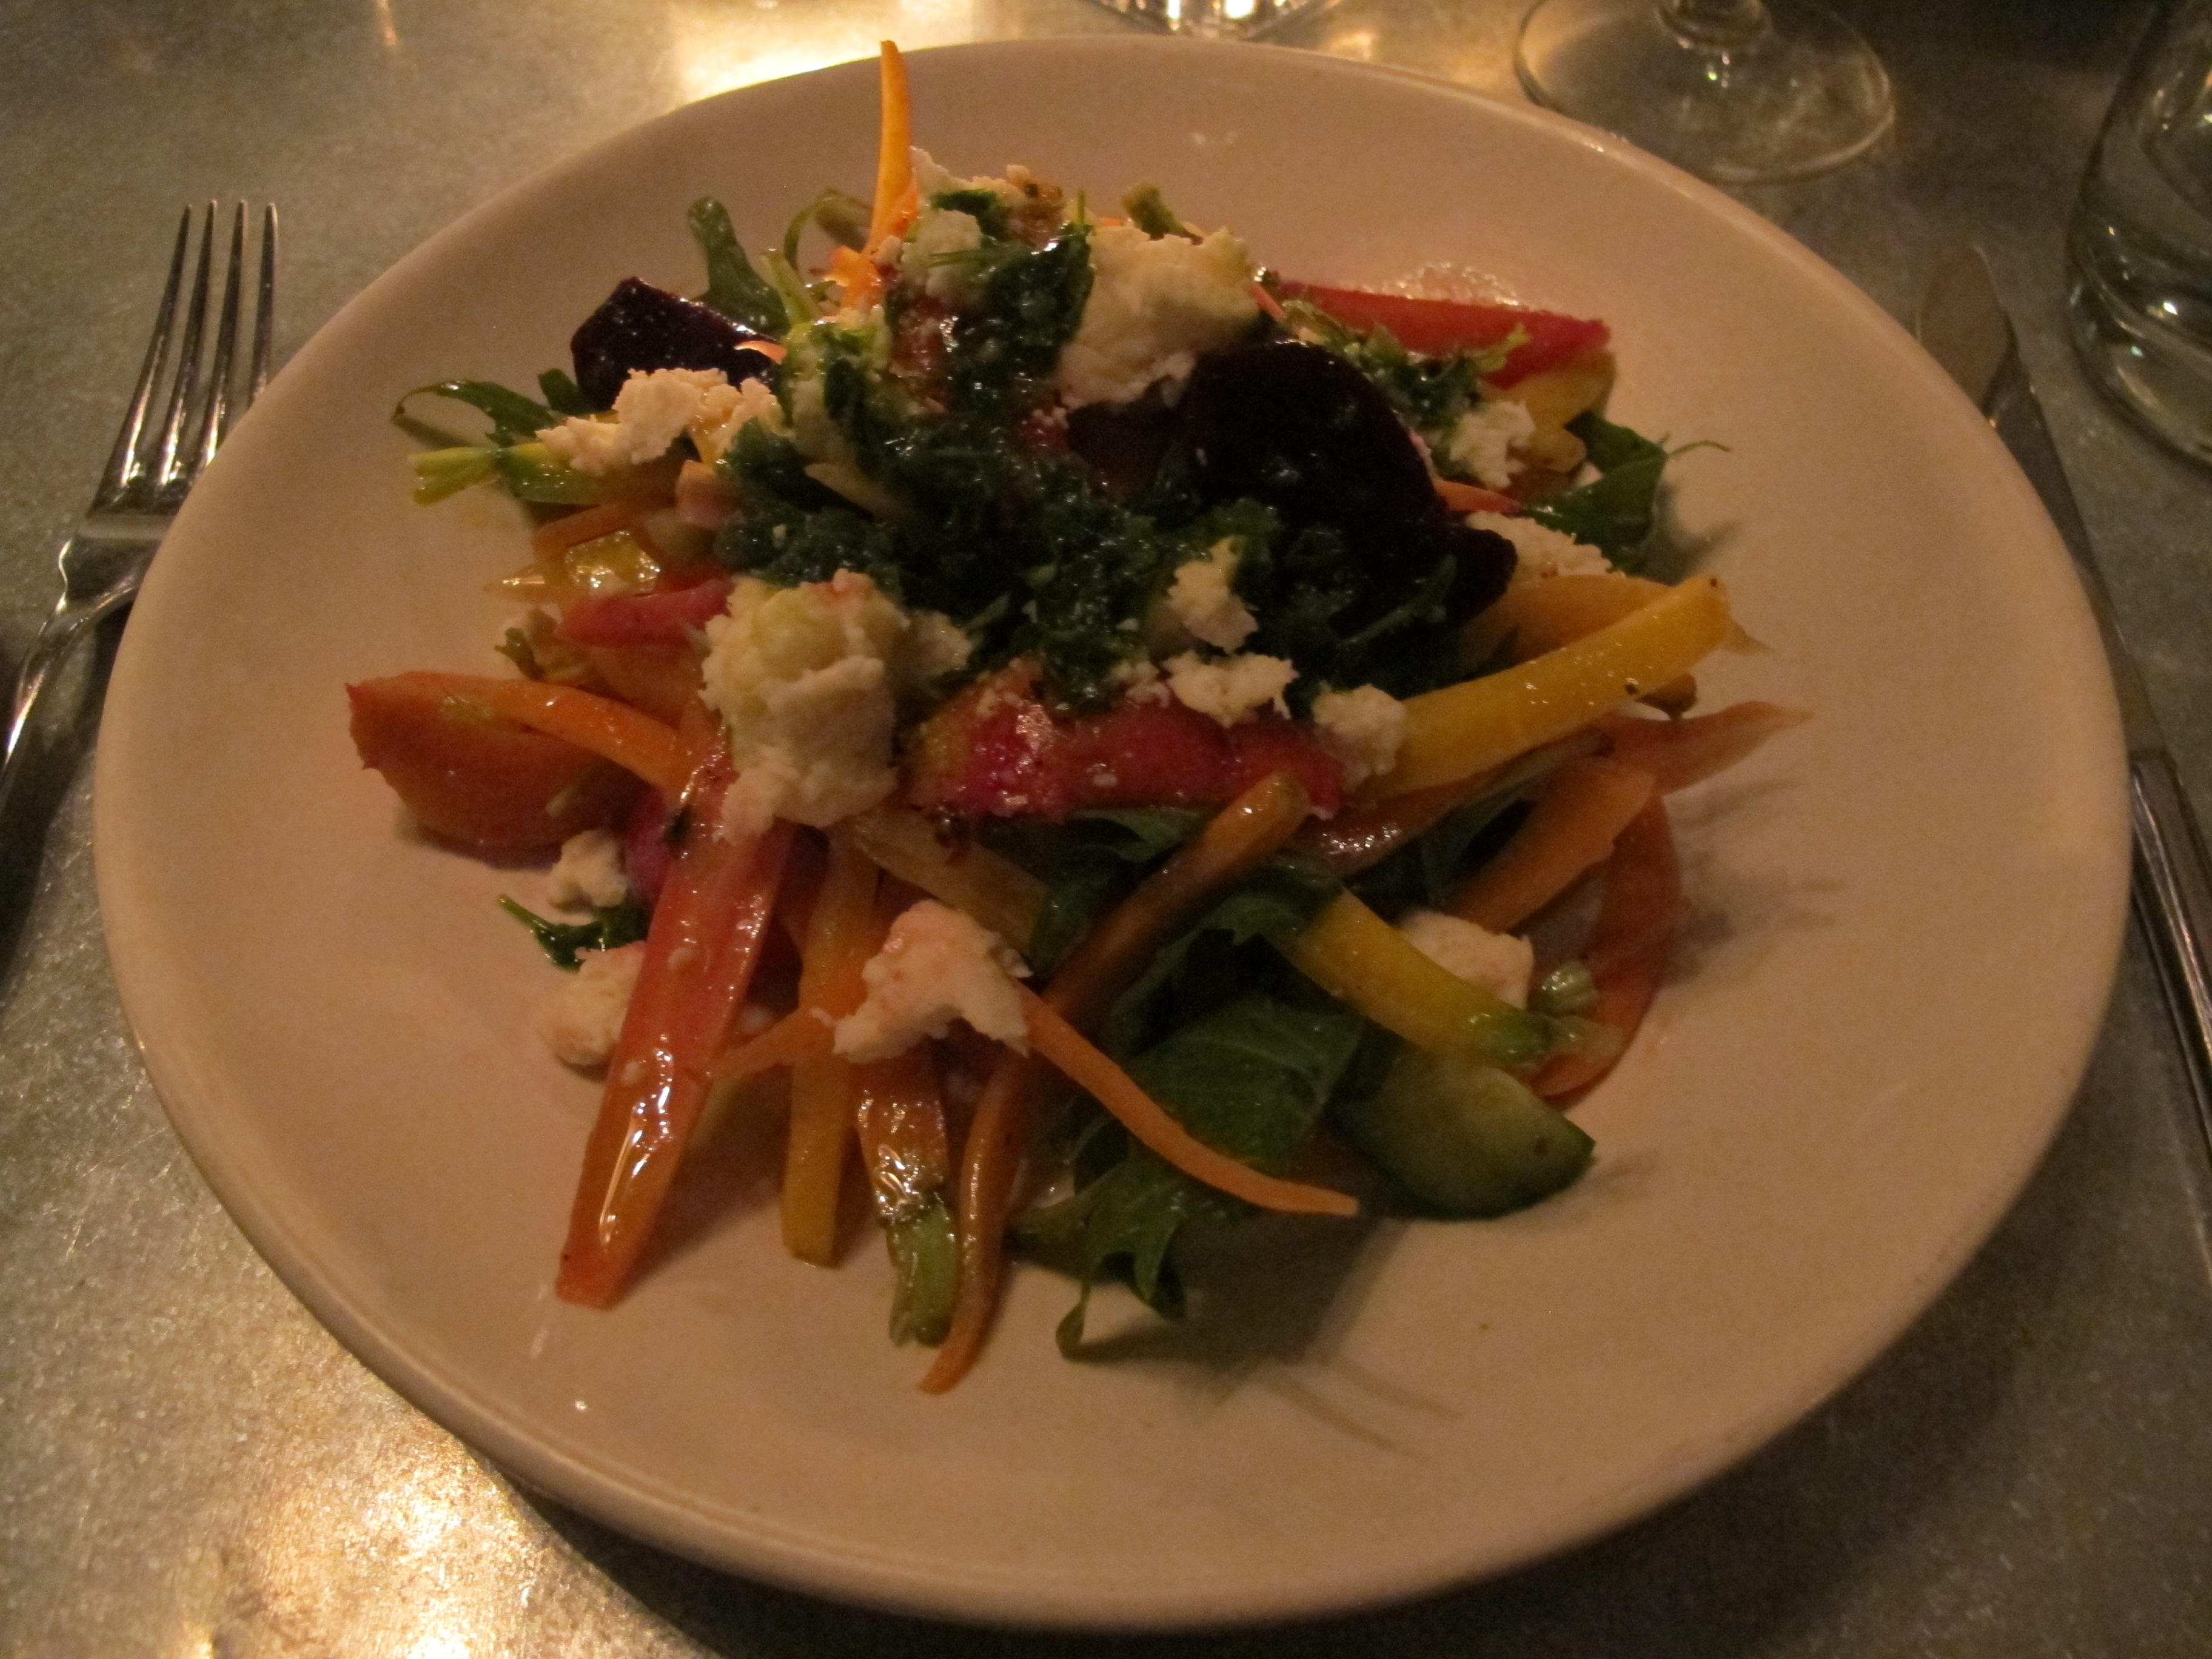 Spiced carrot and beet salad with queso fresco and green harissa